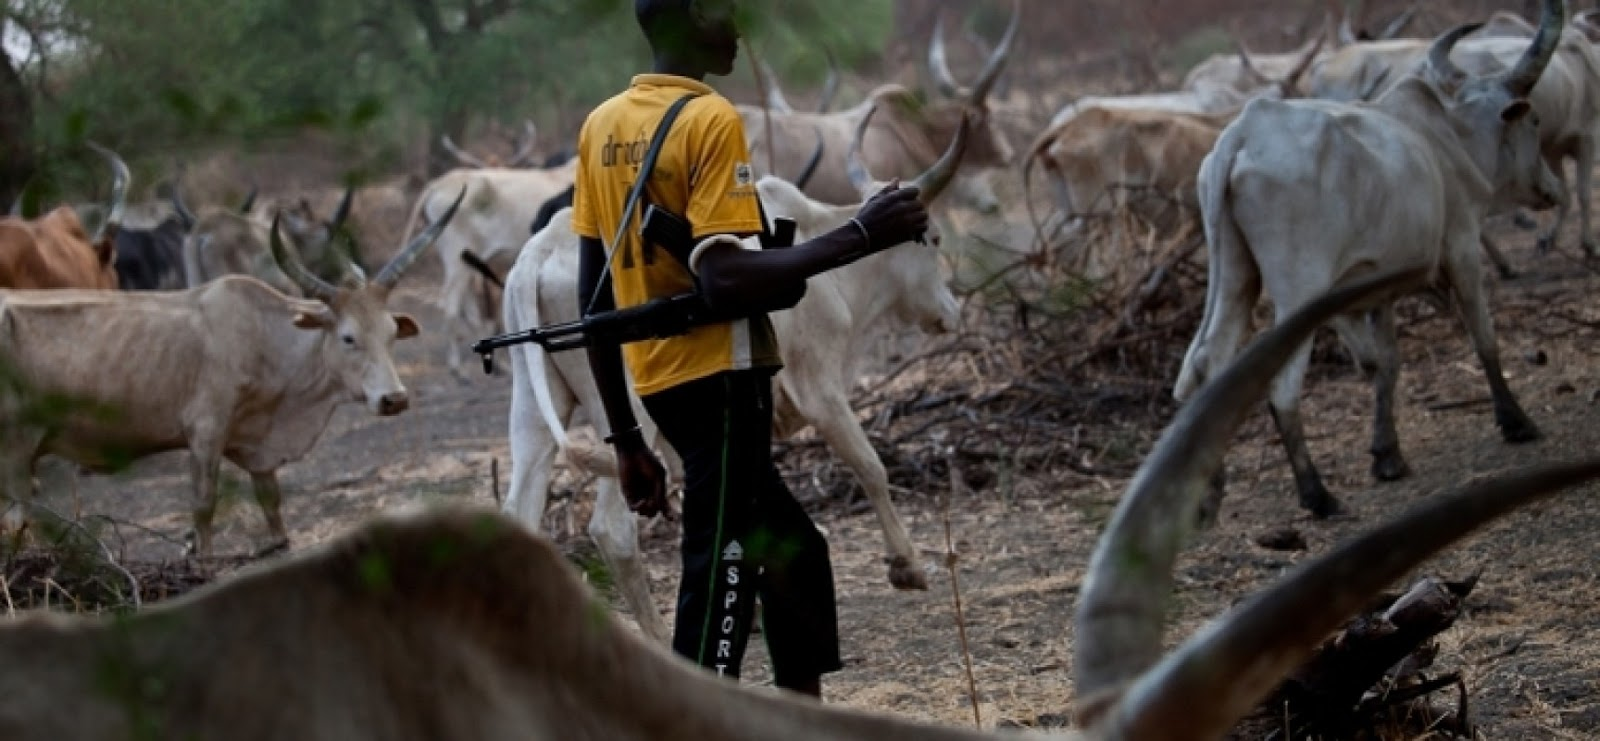 11 killed in shooting by suspected herdsmen militia in Plateau